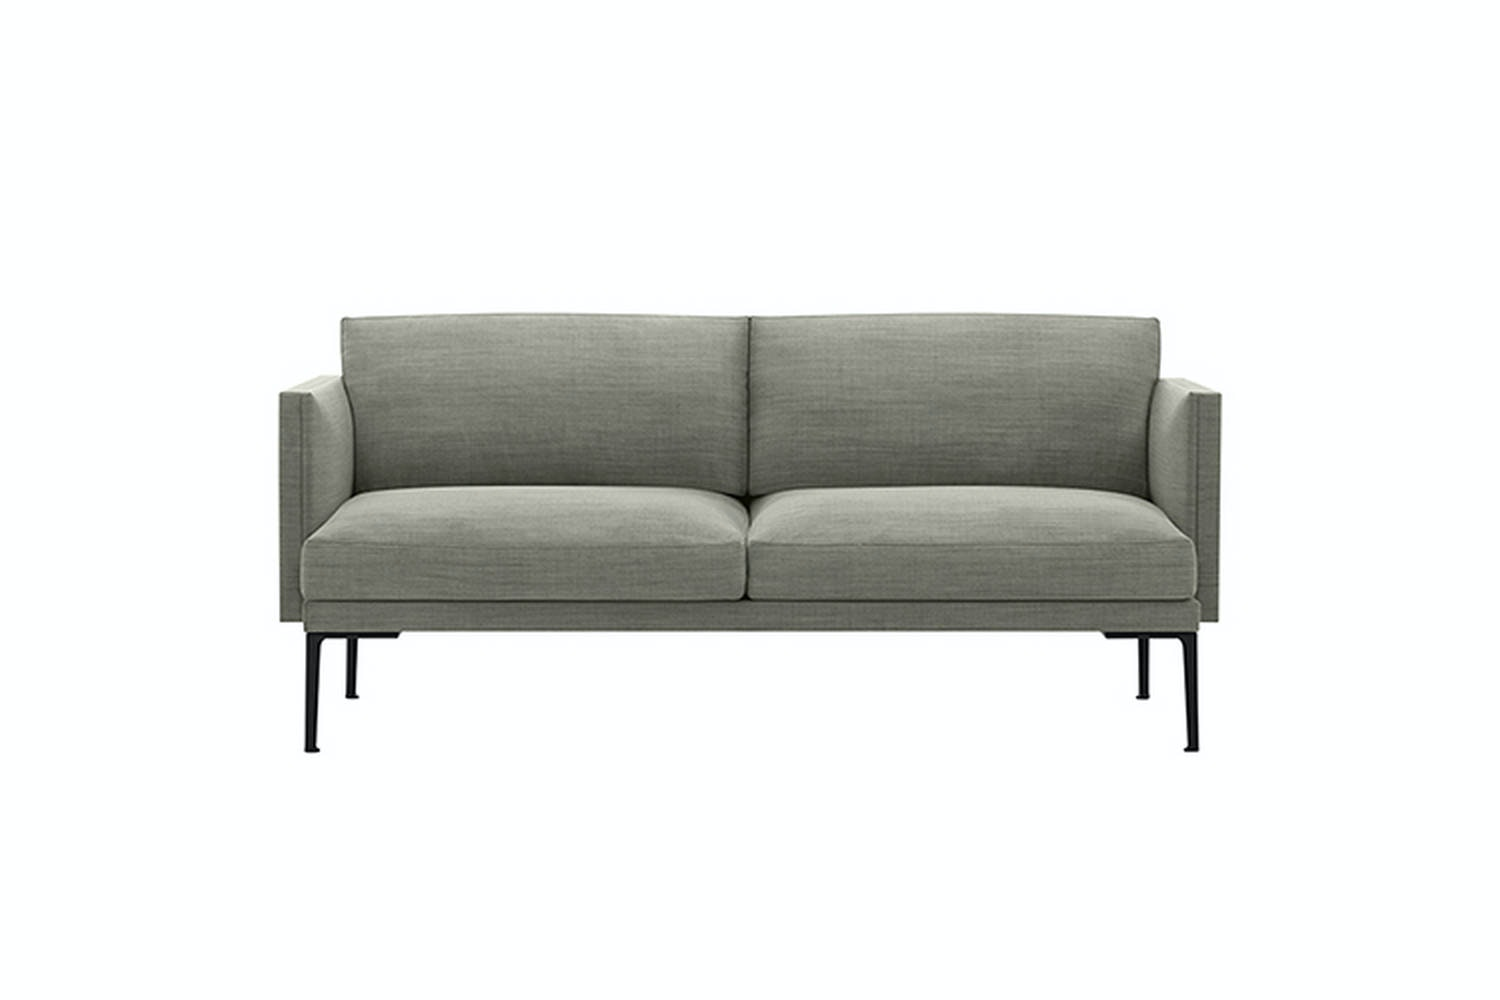 Steeve Sofa by Jean-Marie Massaud for Arper